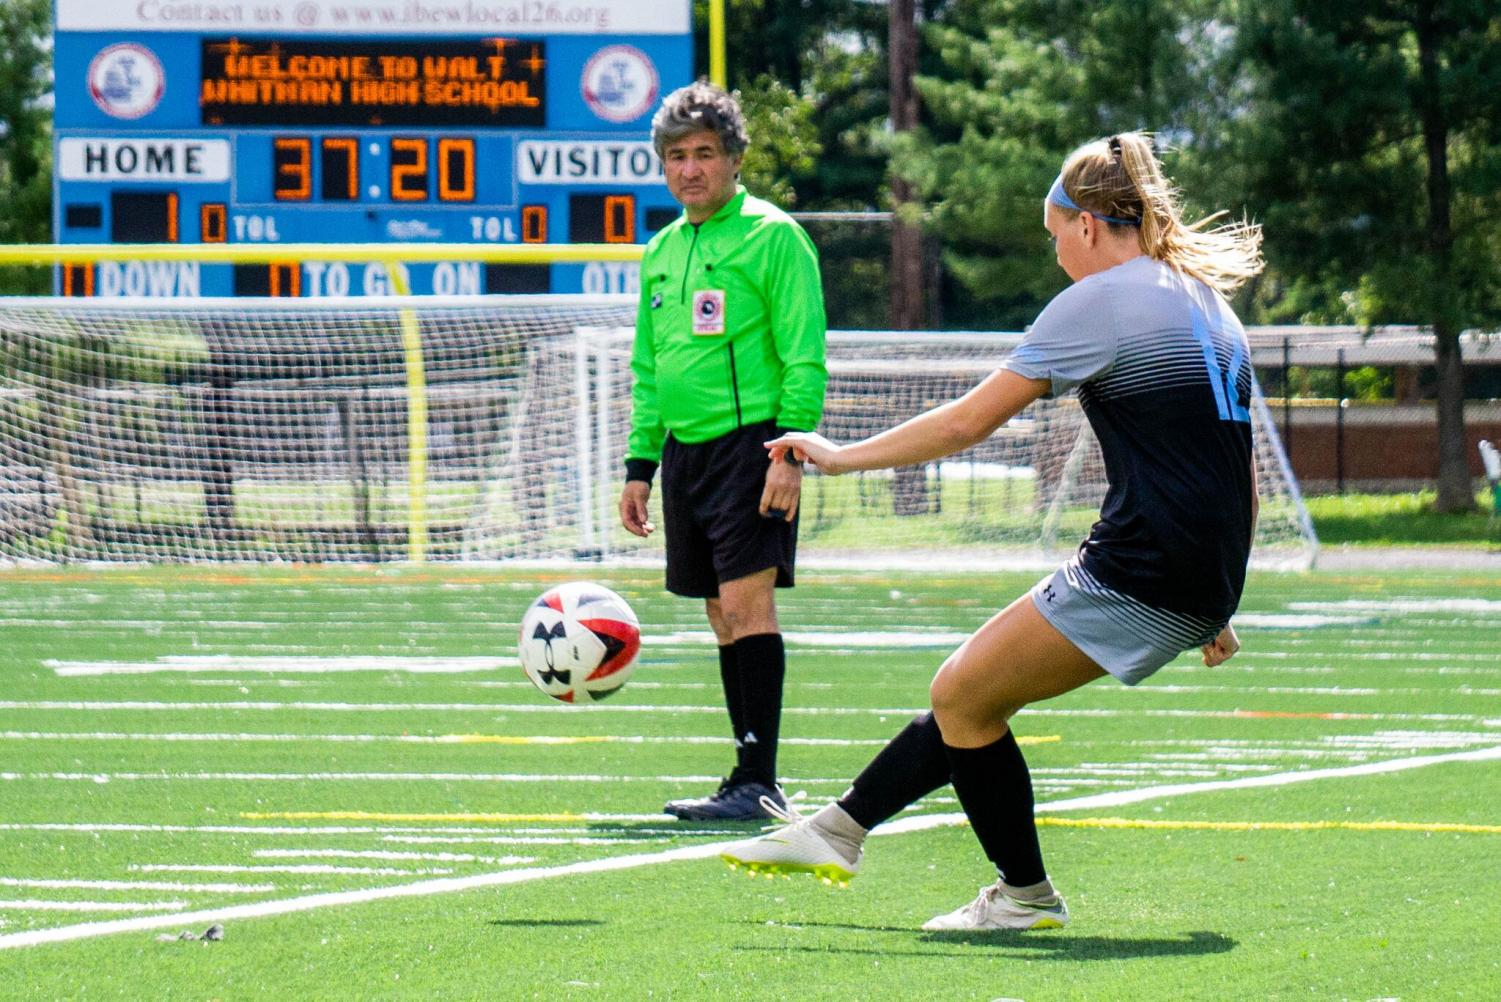 A soccer referee looks on as a Whitman player passes the ball. Recently, the number of high school soccer referees has decreased as a result of verbal abuse.